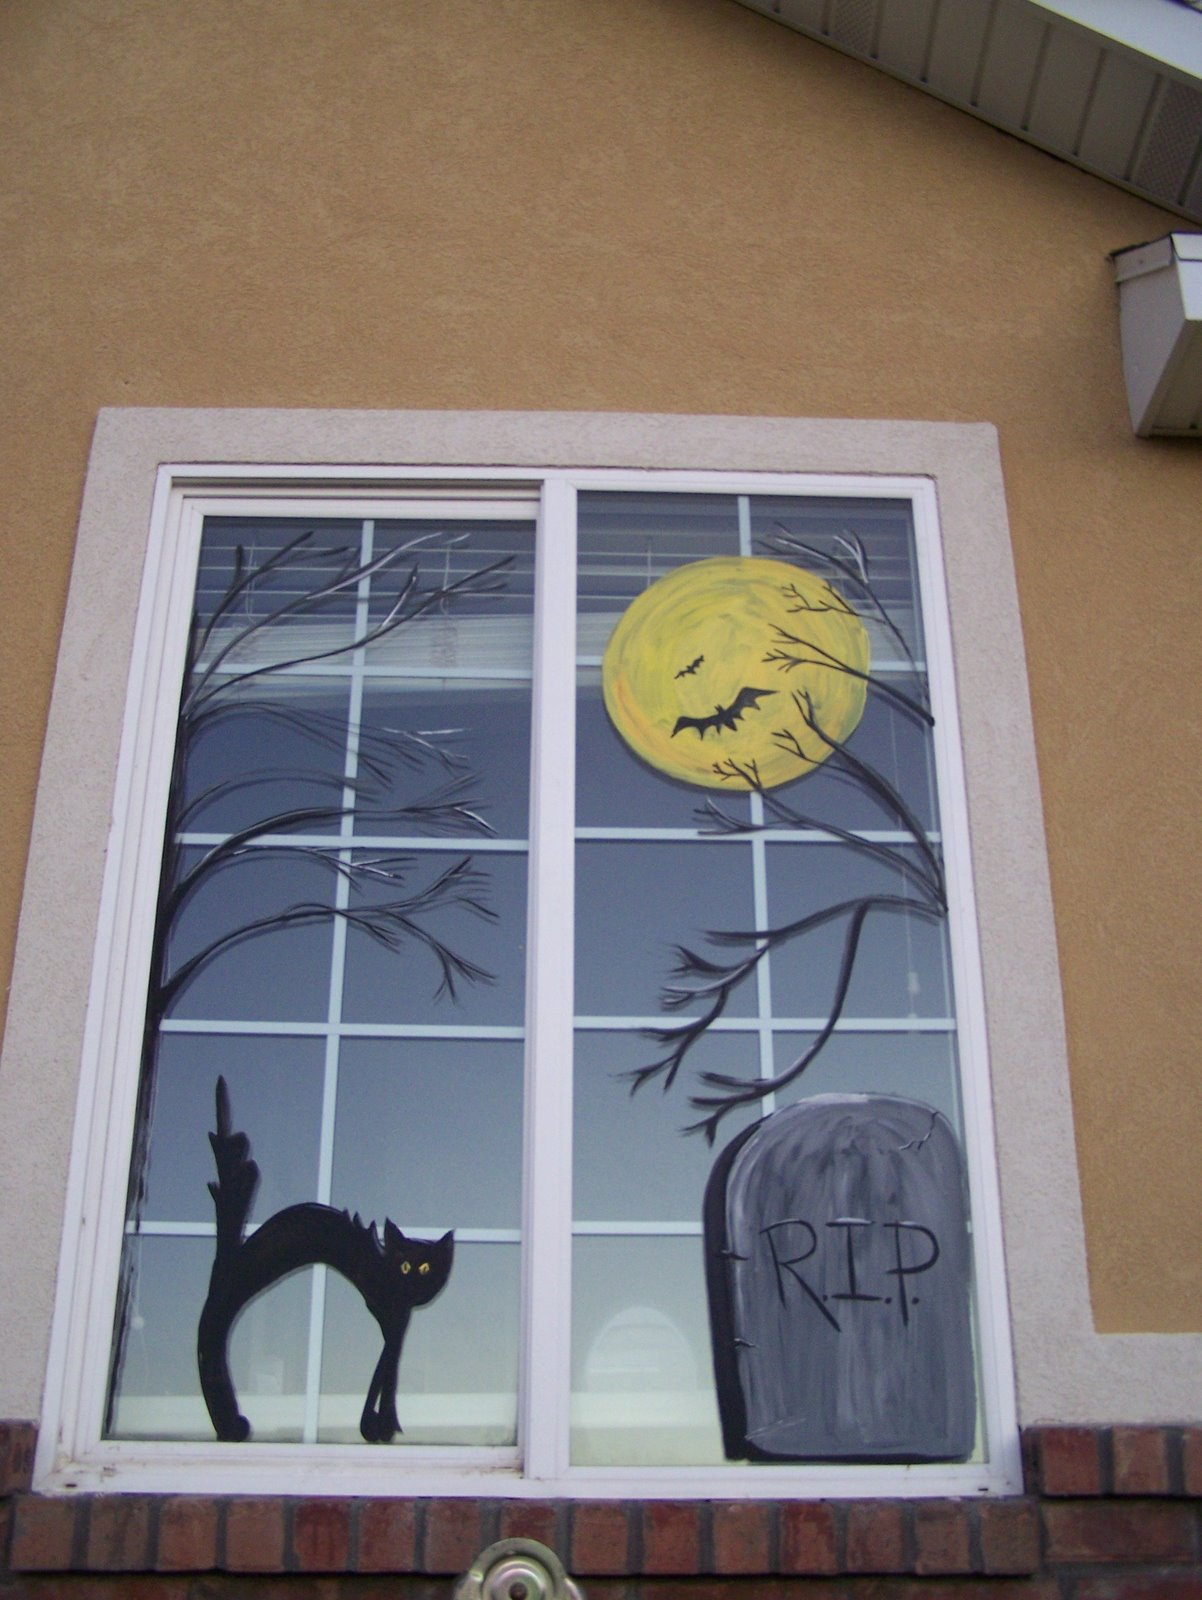 10 Spooky Window Decorations to Get Your Home Ready for